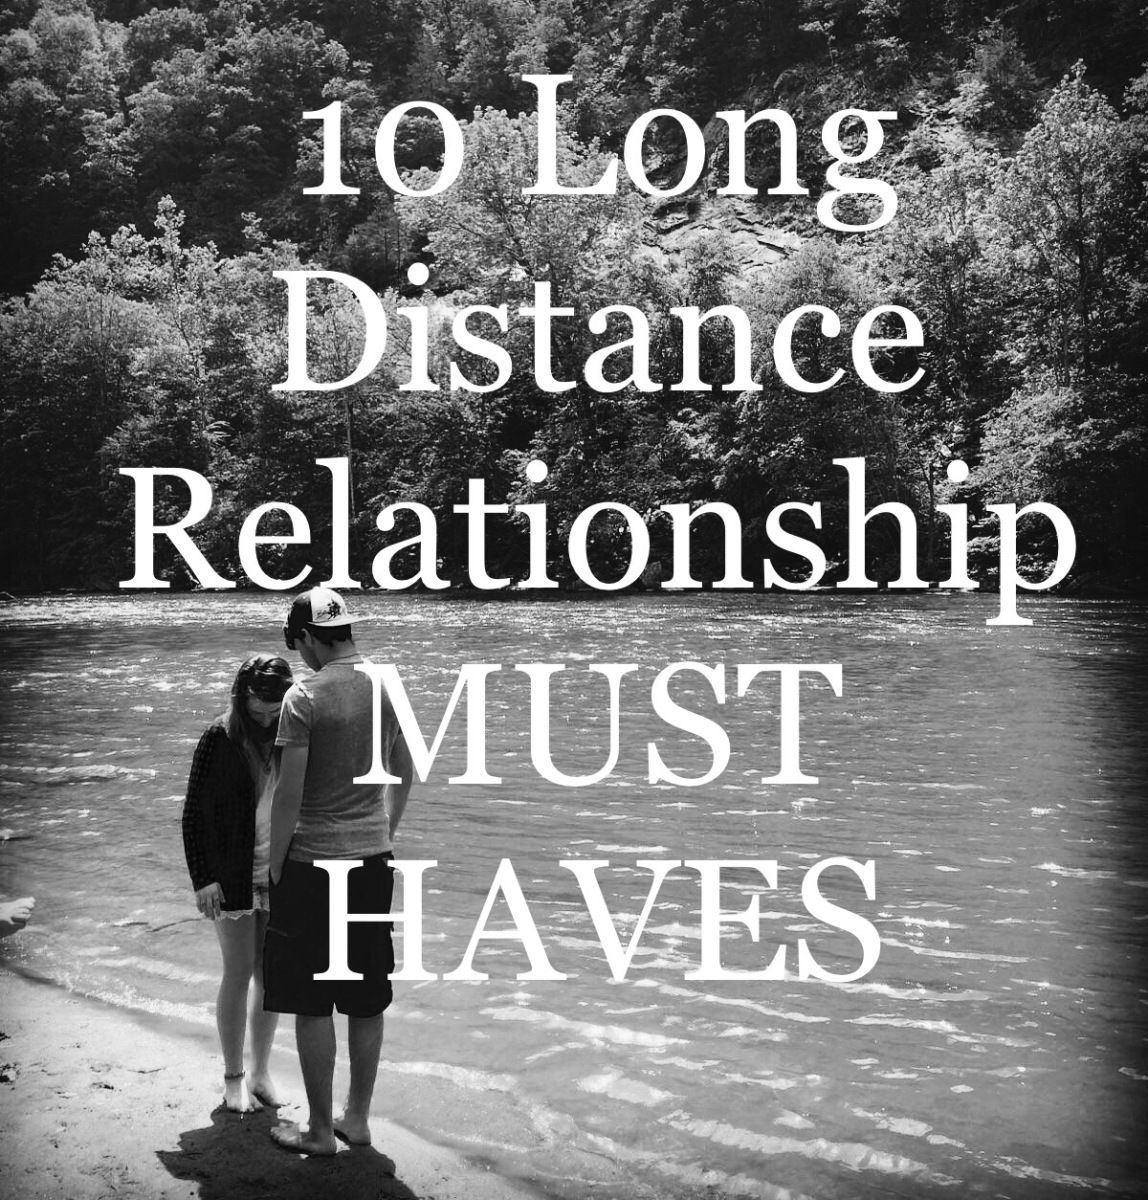 Christian advice on long distance dating